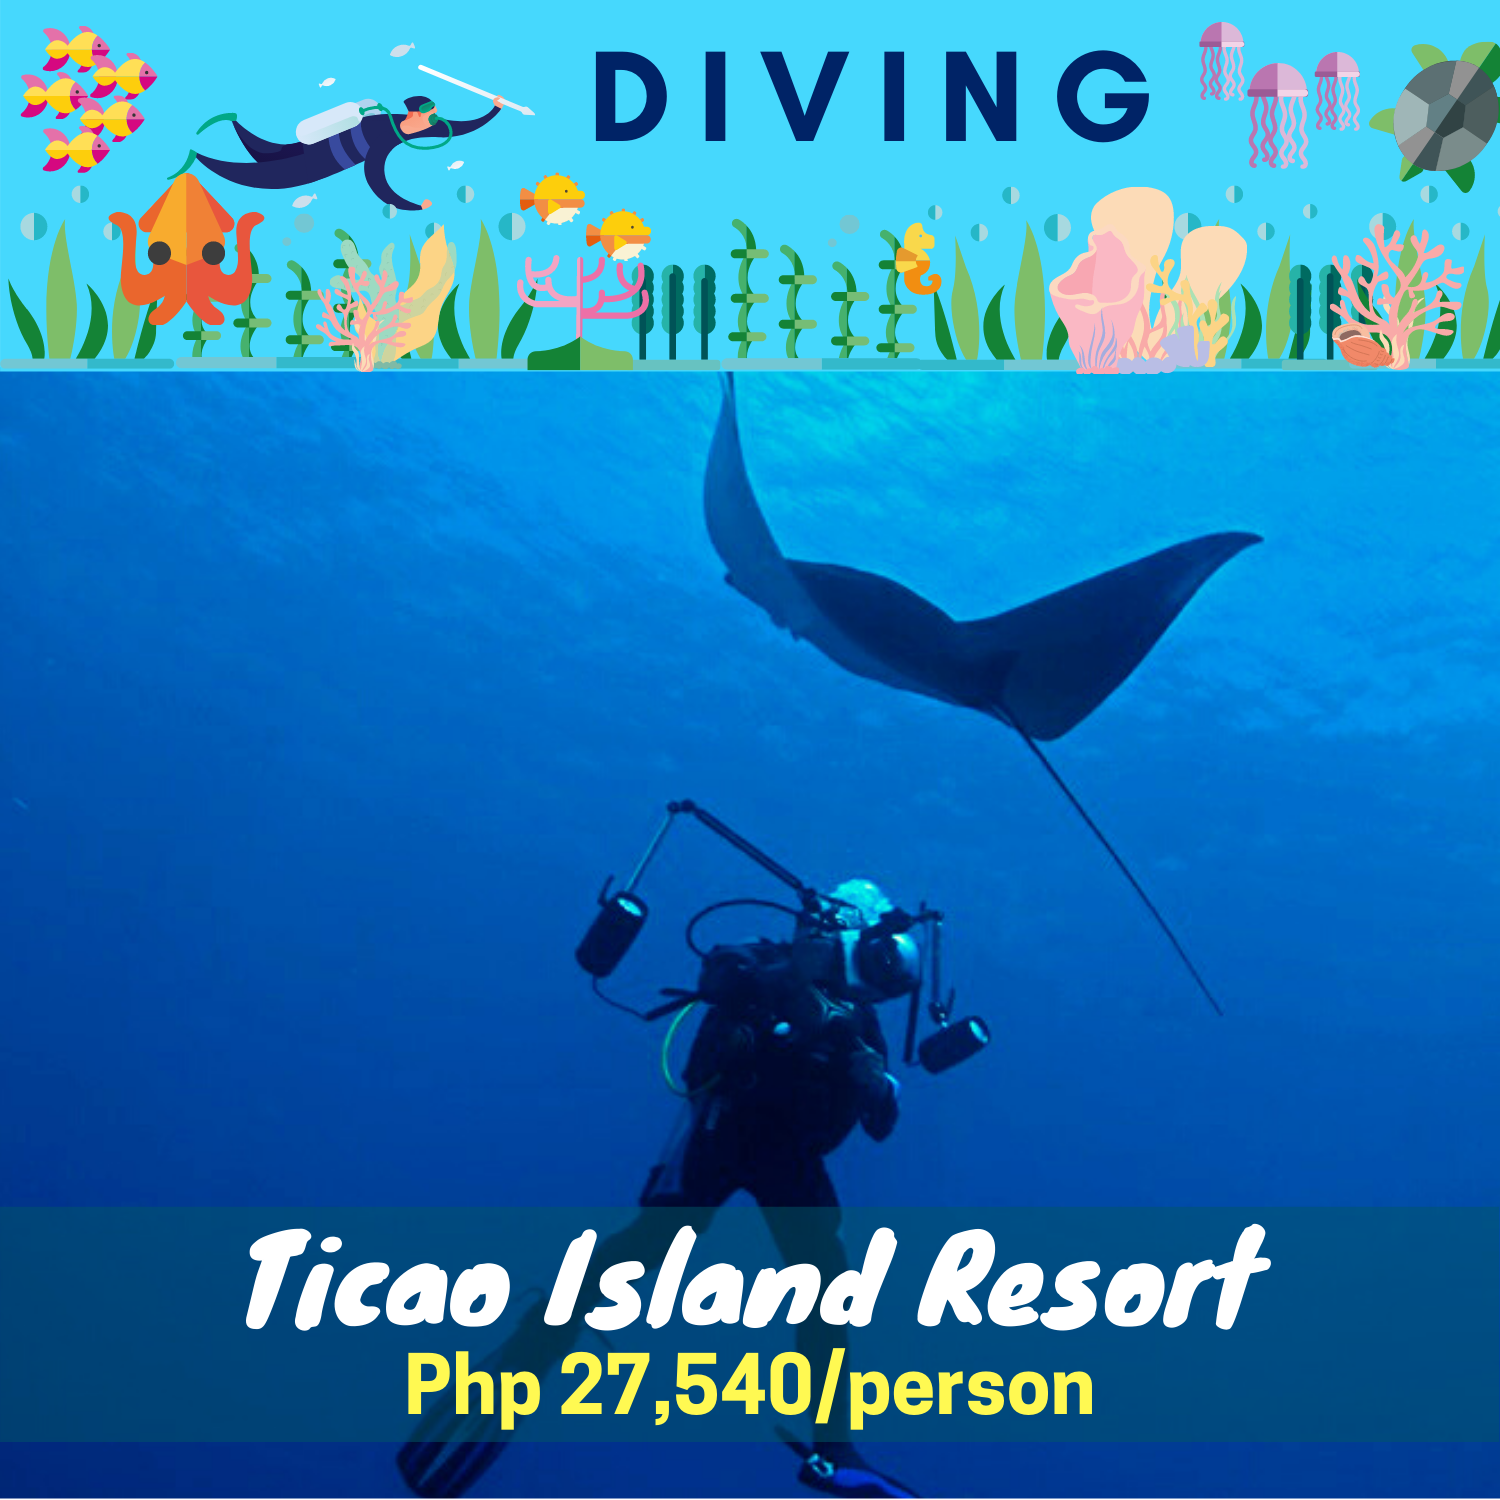 Ticao Island Resort Diving Package